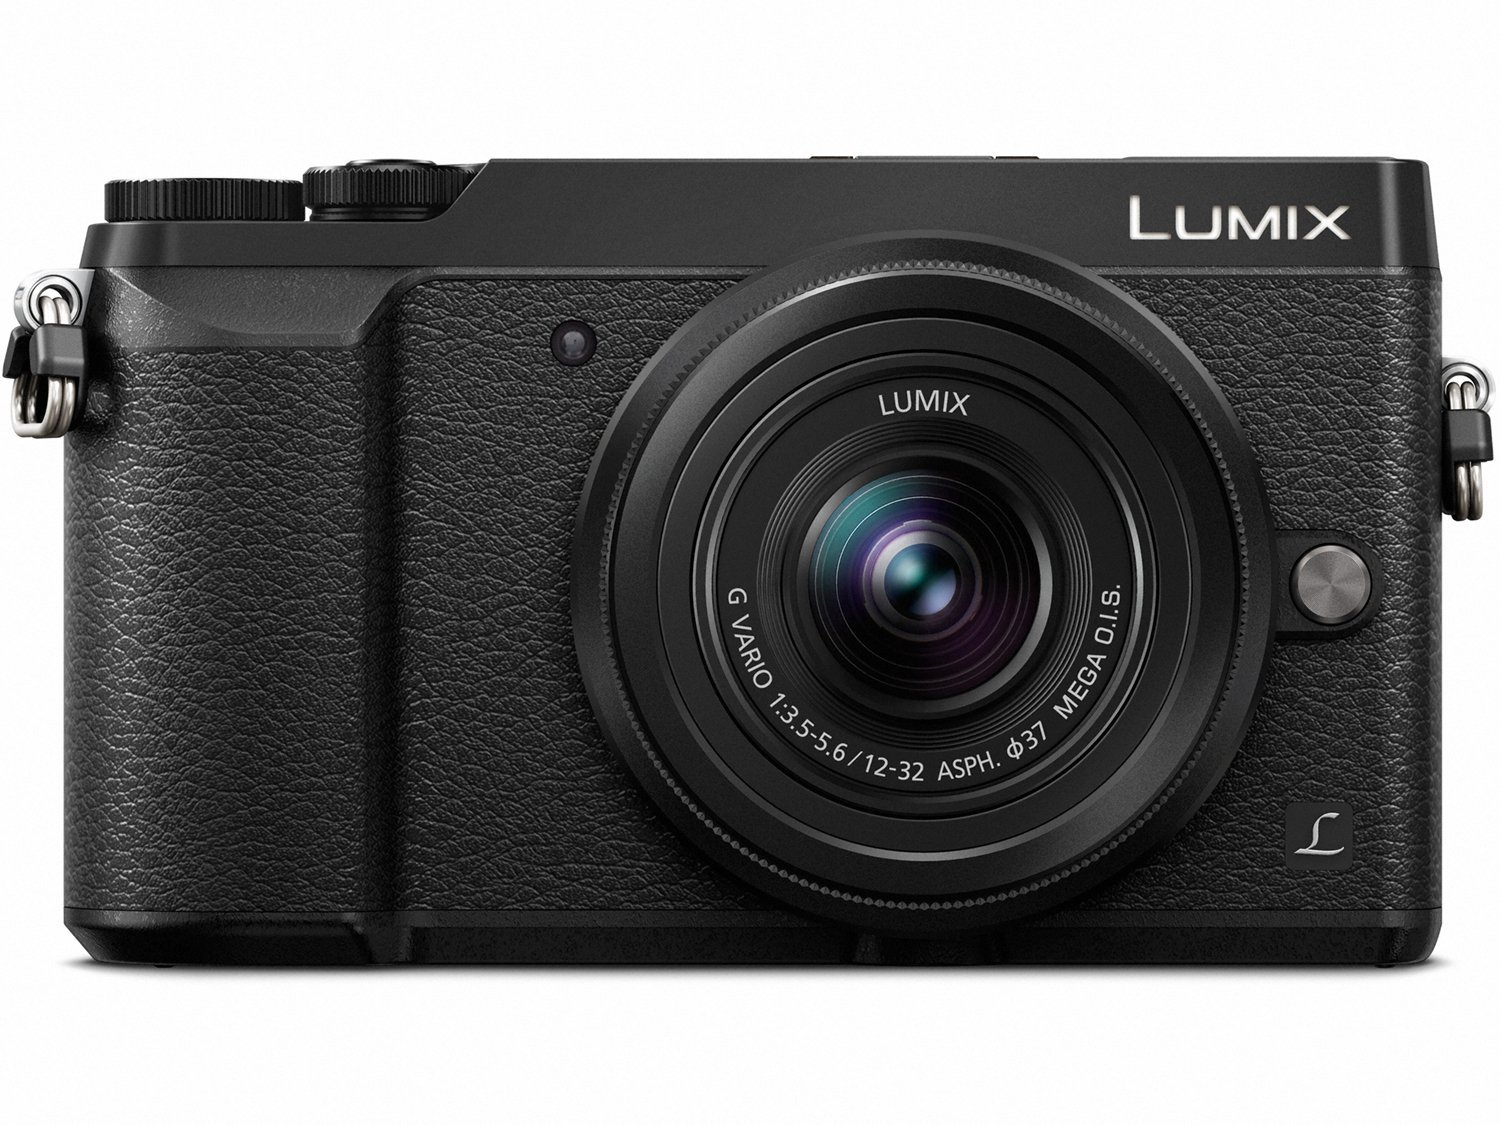 Panasonic Lumix GX85 Review in 2020